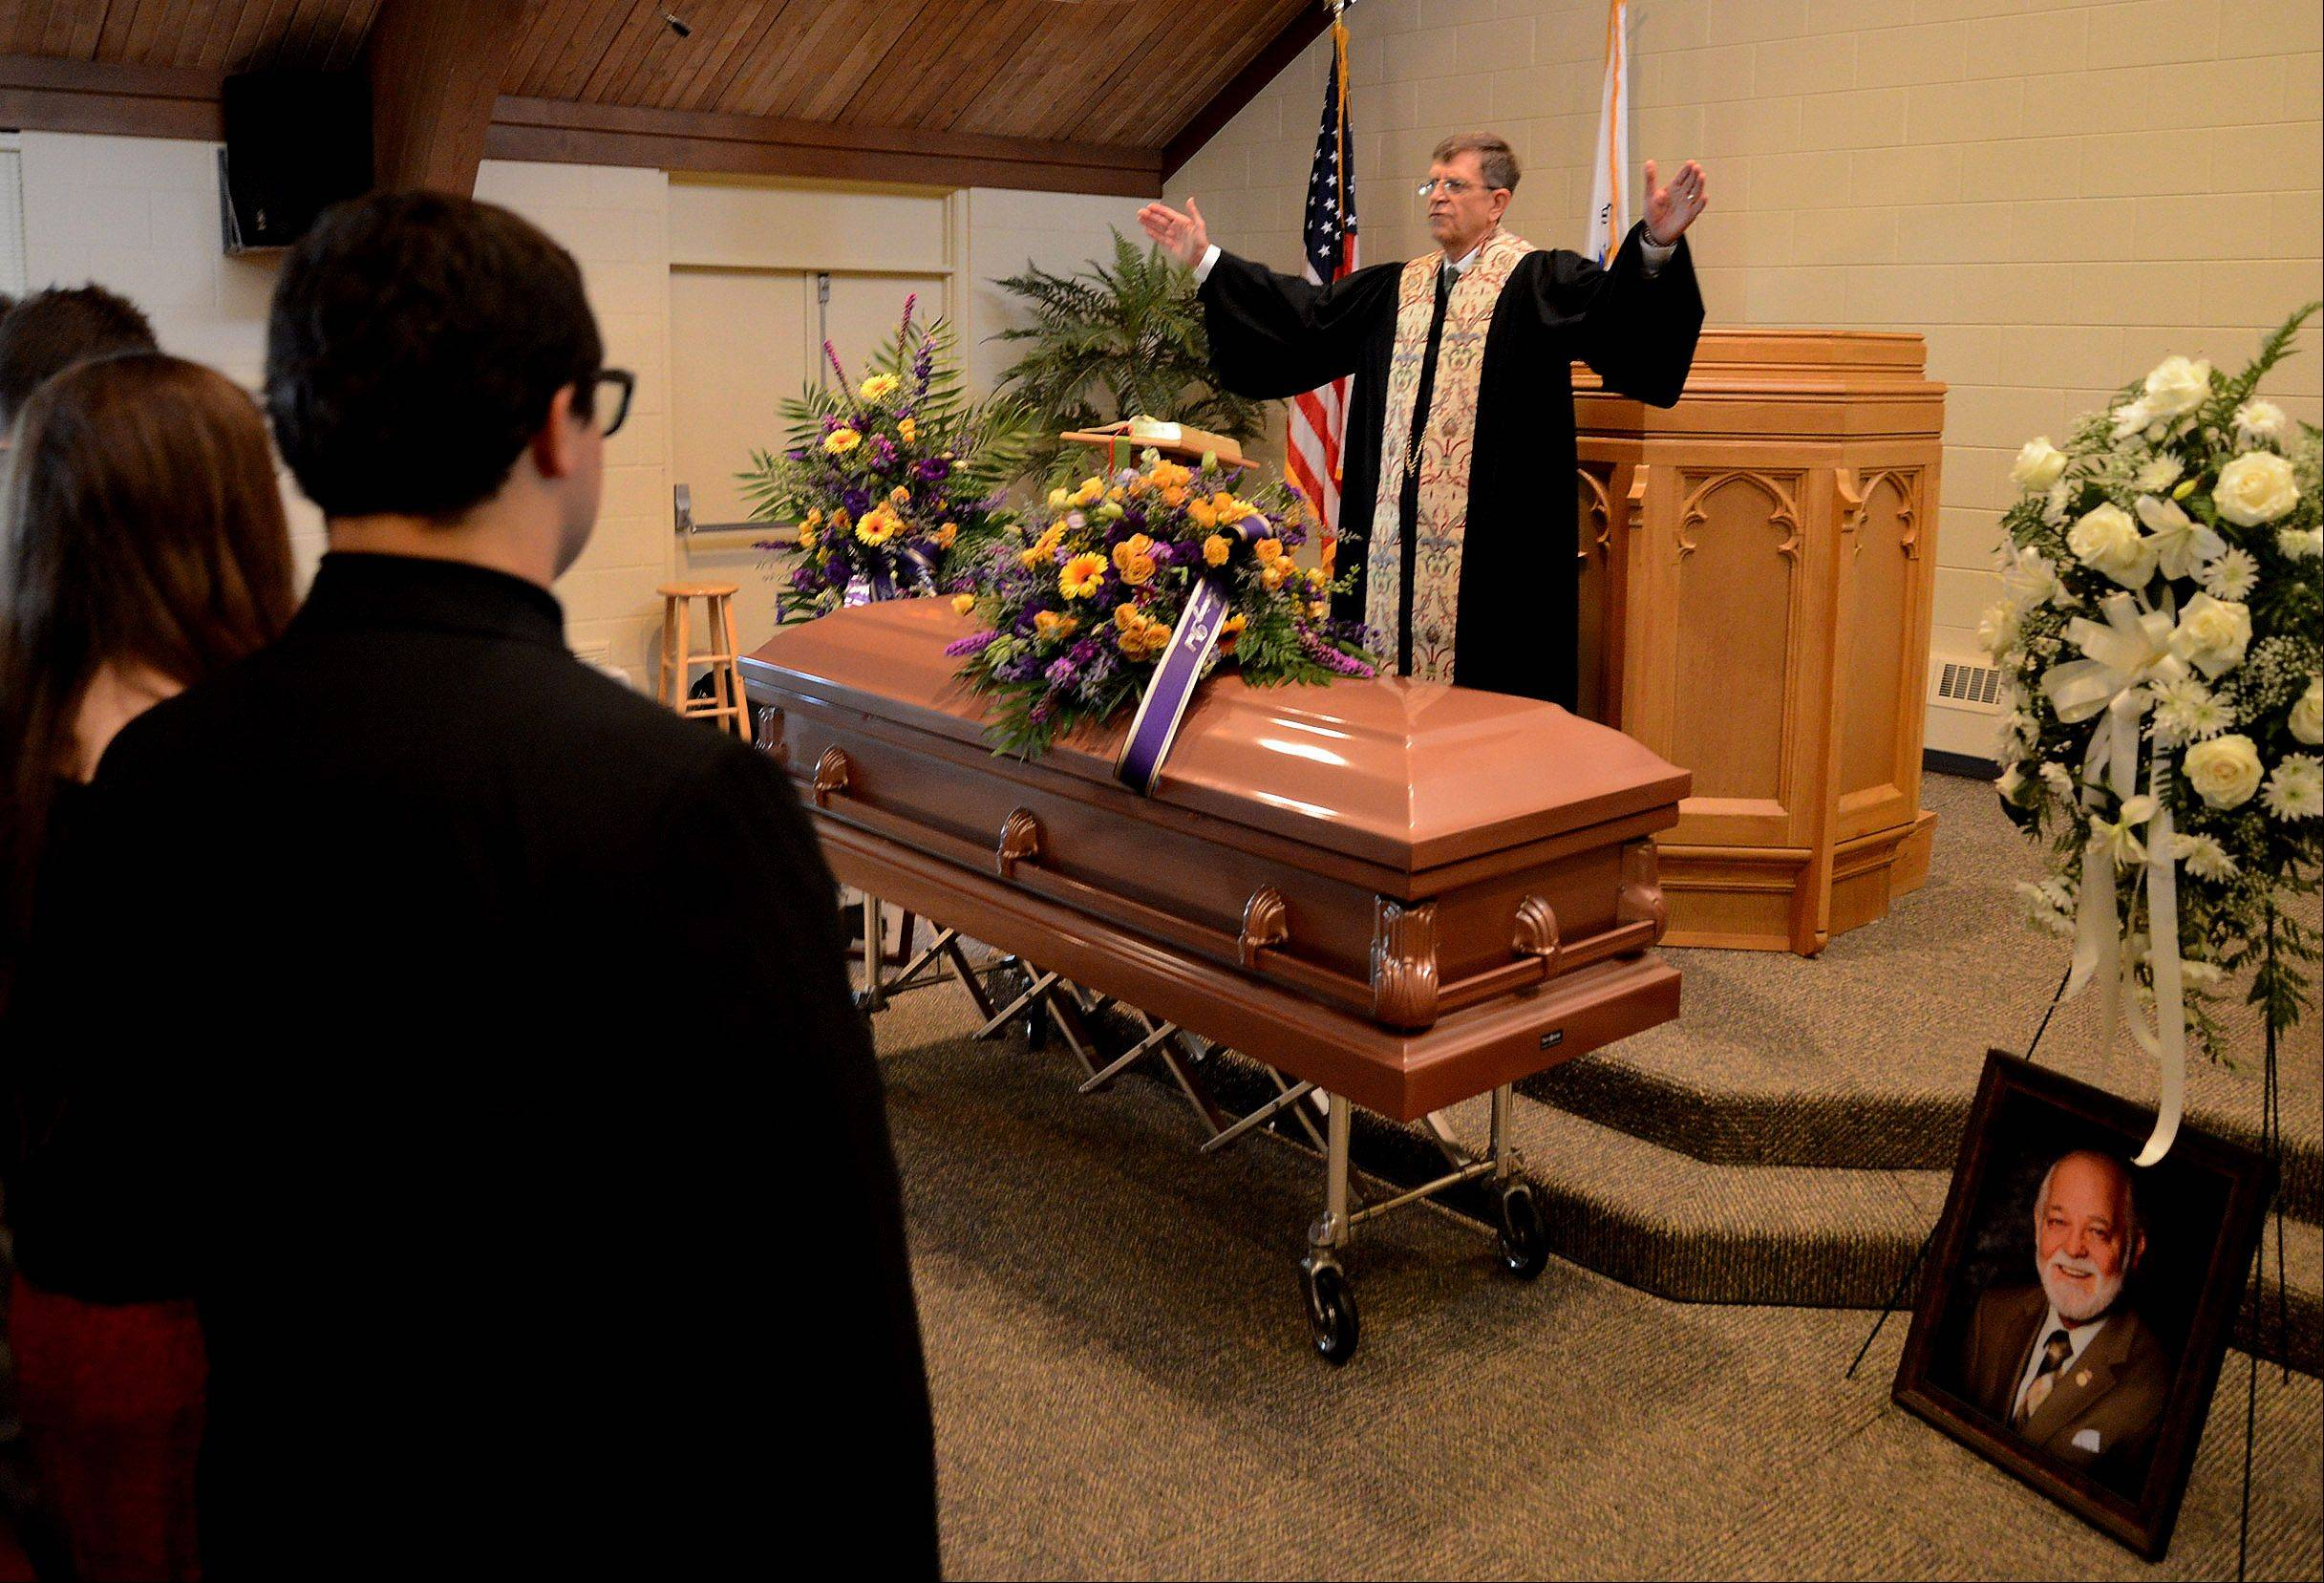 Pastor Bob Crall of the Kirk of the Lakes Presbyterian Church in Mundelein delivers the benediction at the end of the funeral of longtime Mundelein resident and volunteer John Lynn. Lynn is best known as the founder of the Kirk Players theater group.